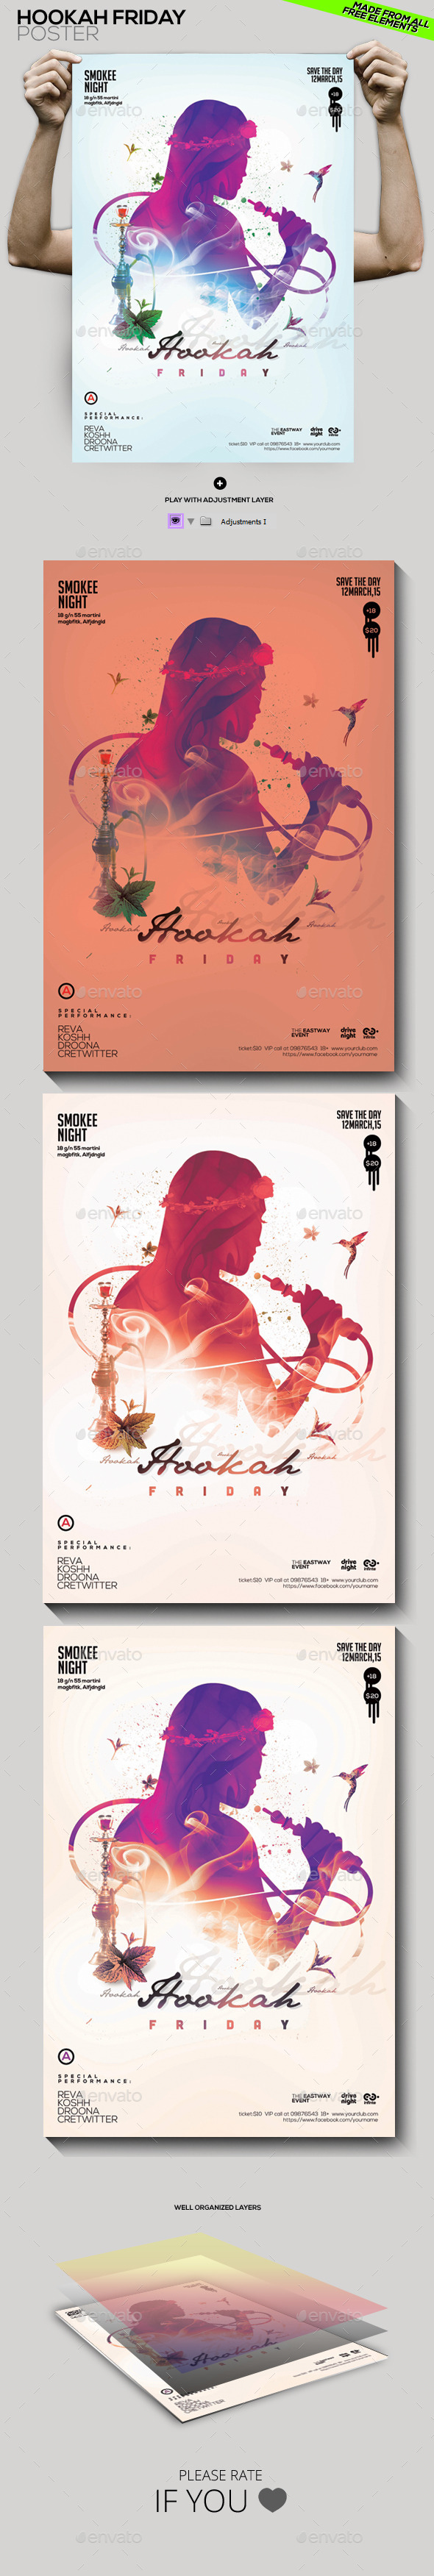 Hookah Friday Party Flyer/Poster - Clubs & Parties Events